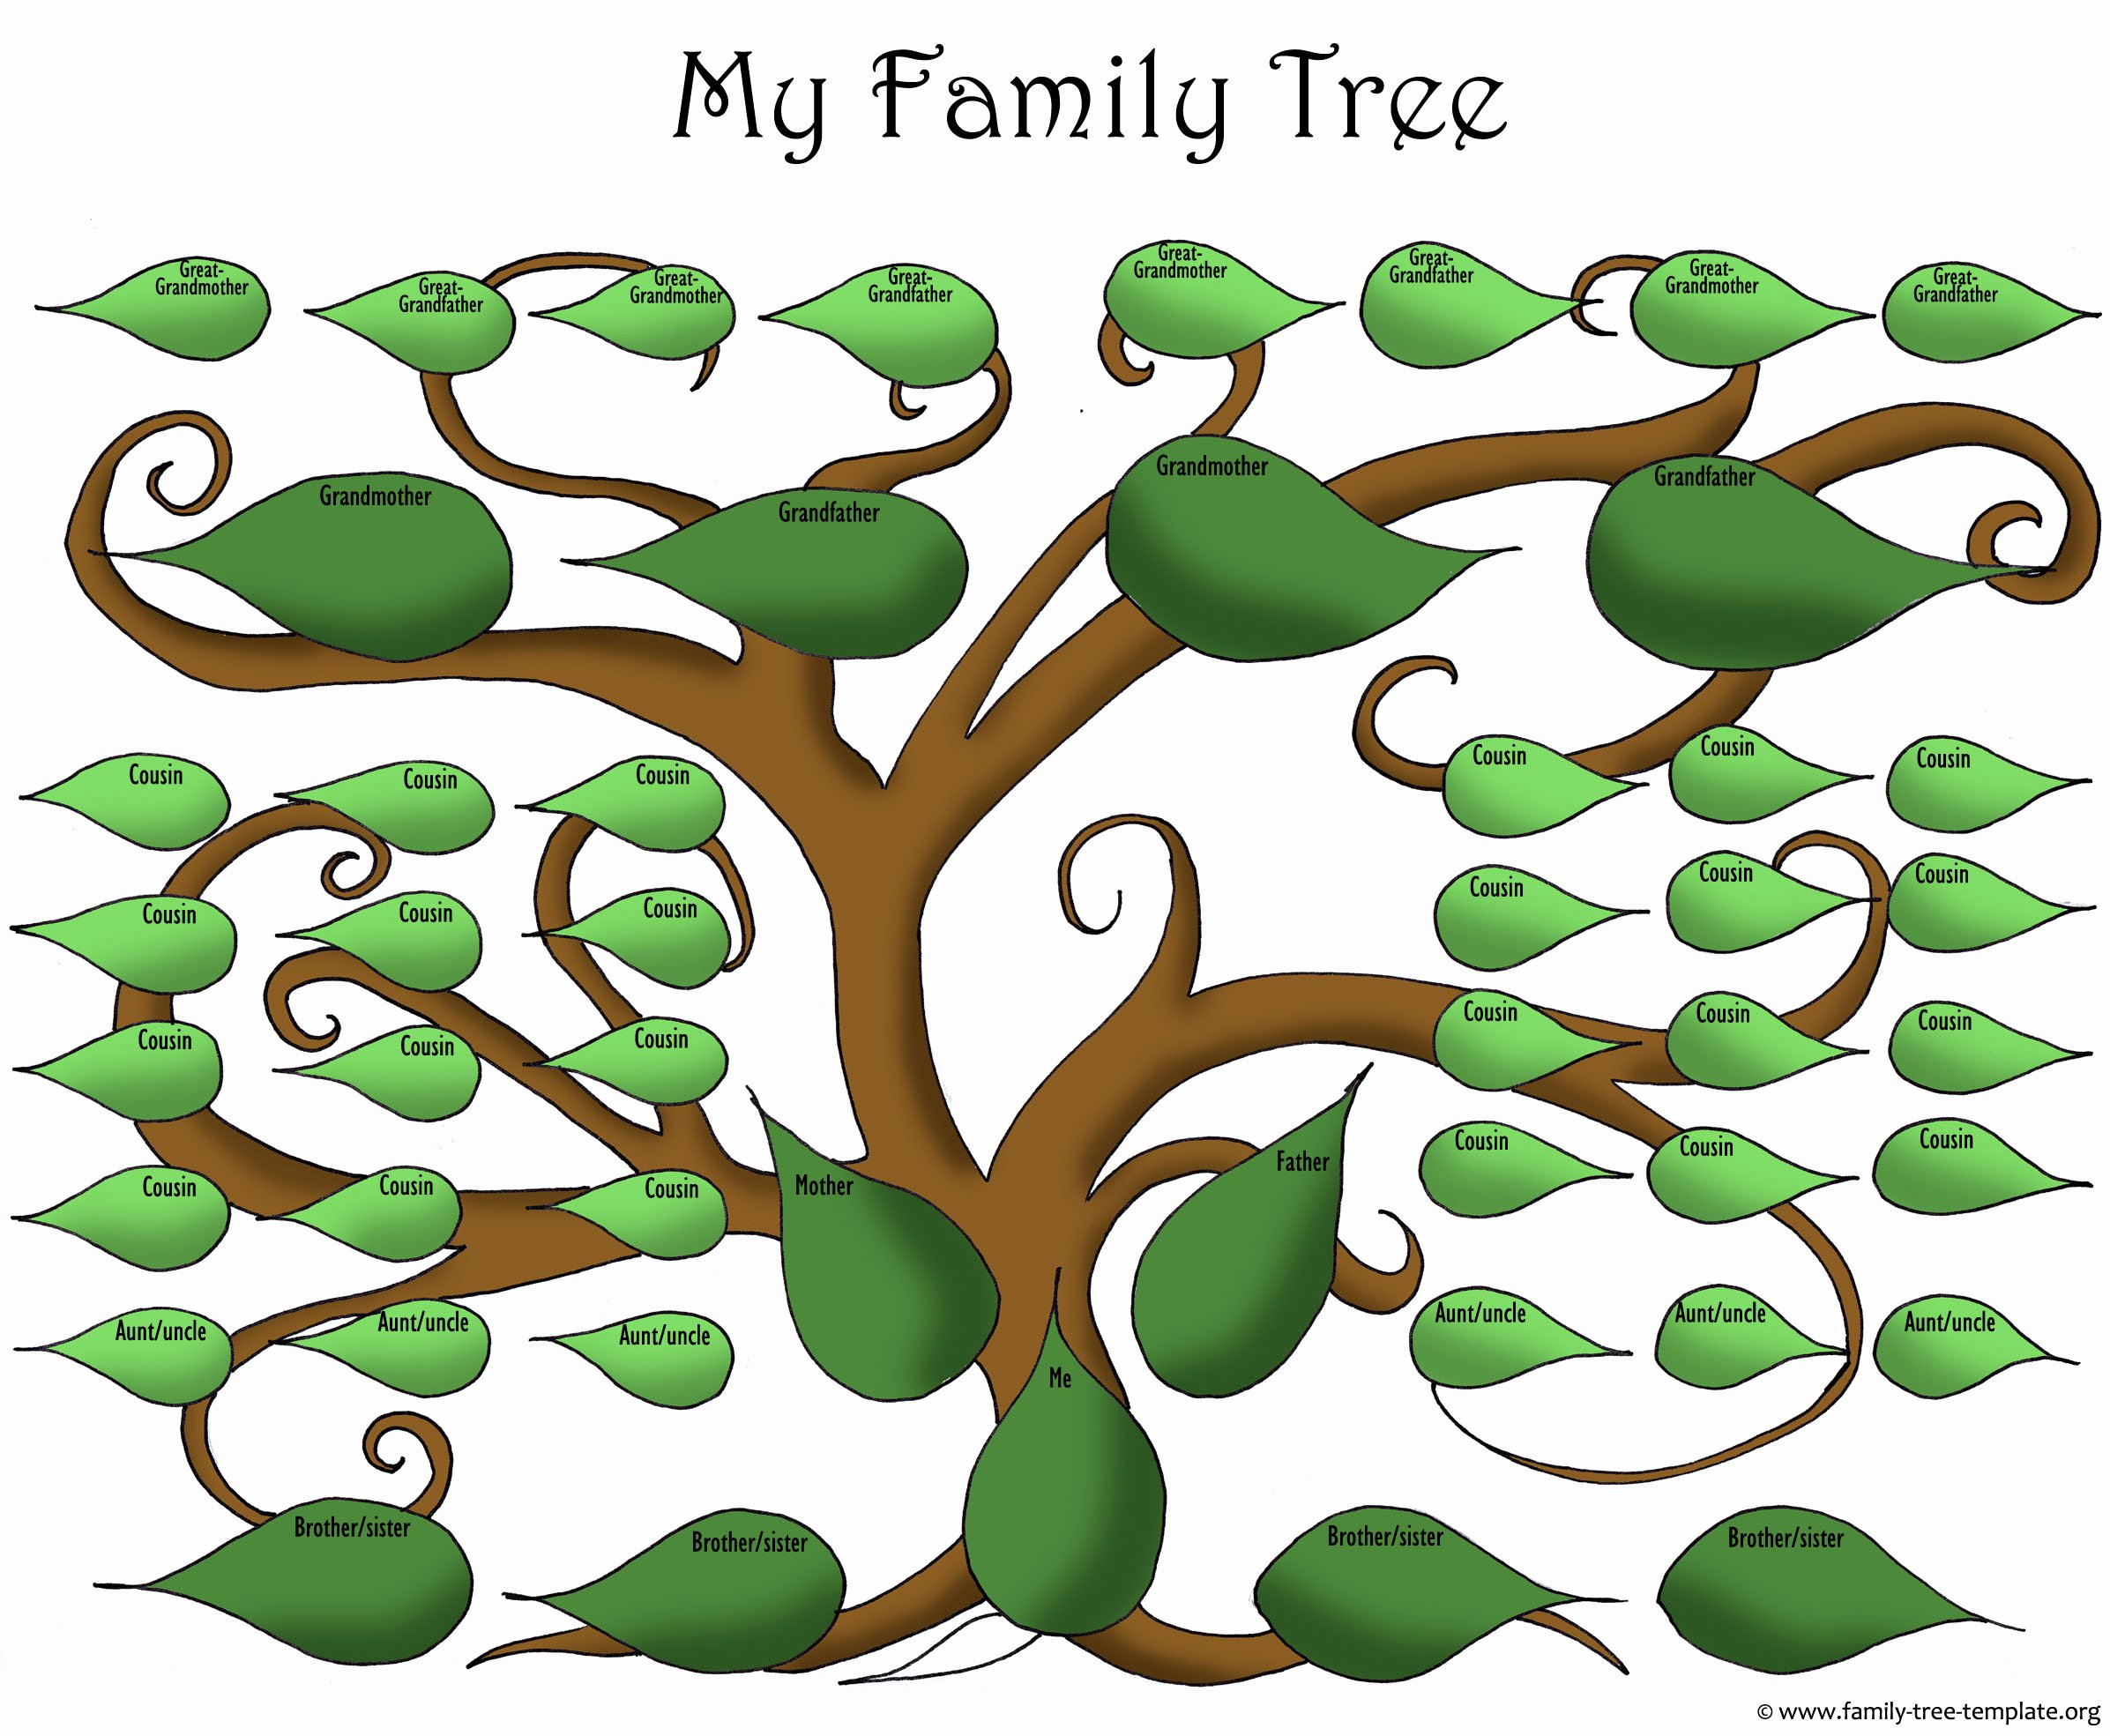 Tree Template for Family Tree Elegant A Printable Blank Family Tree to Make Your Kids Genealogy